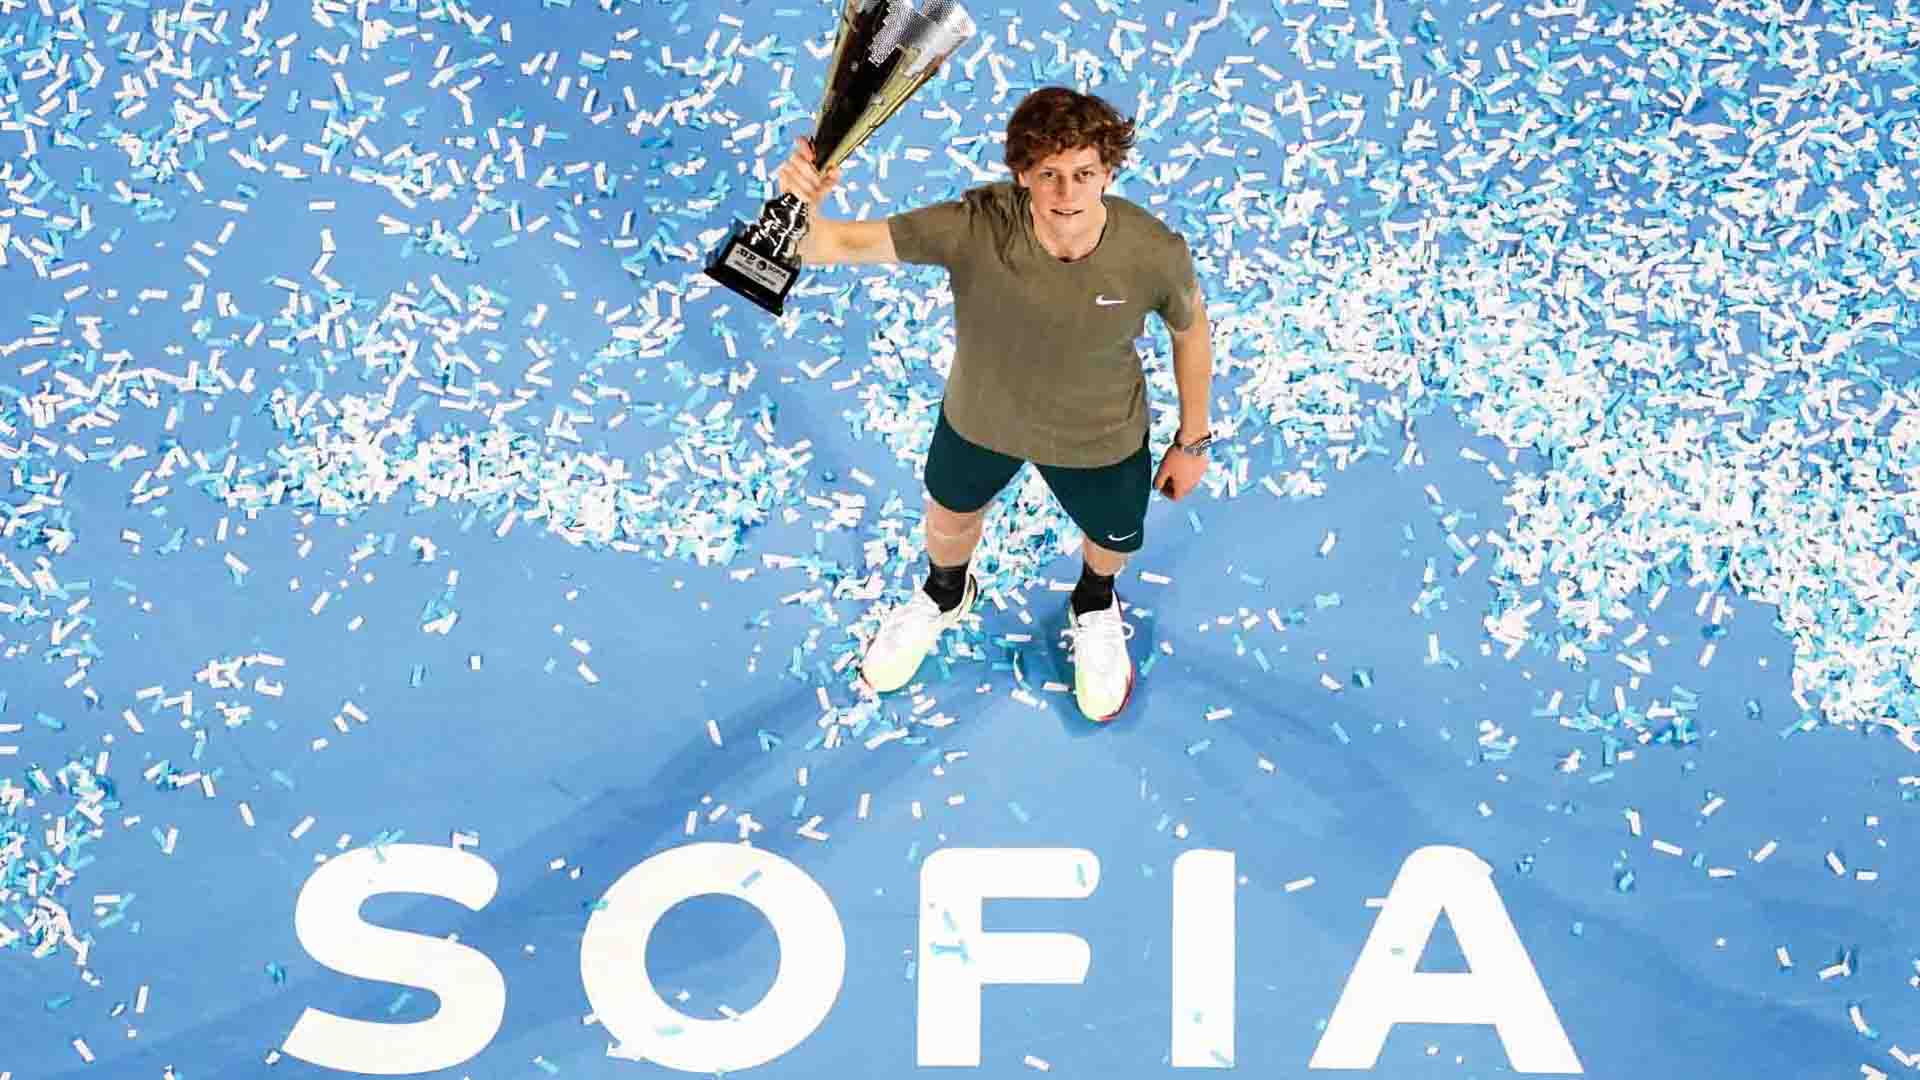 Jannik Sinner is the first Italian to win an ATP Tour singles title in 2020.